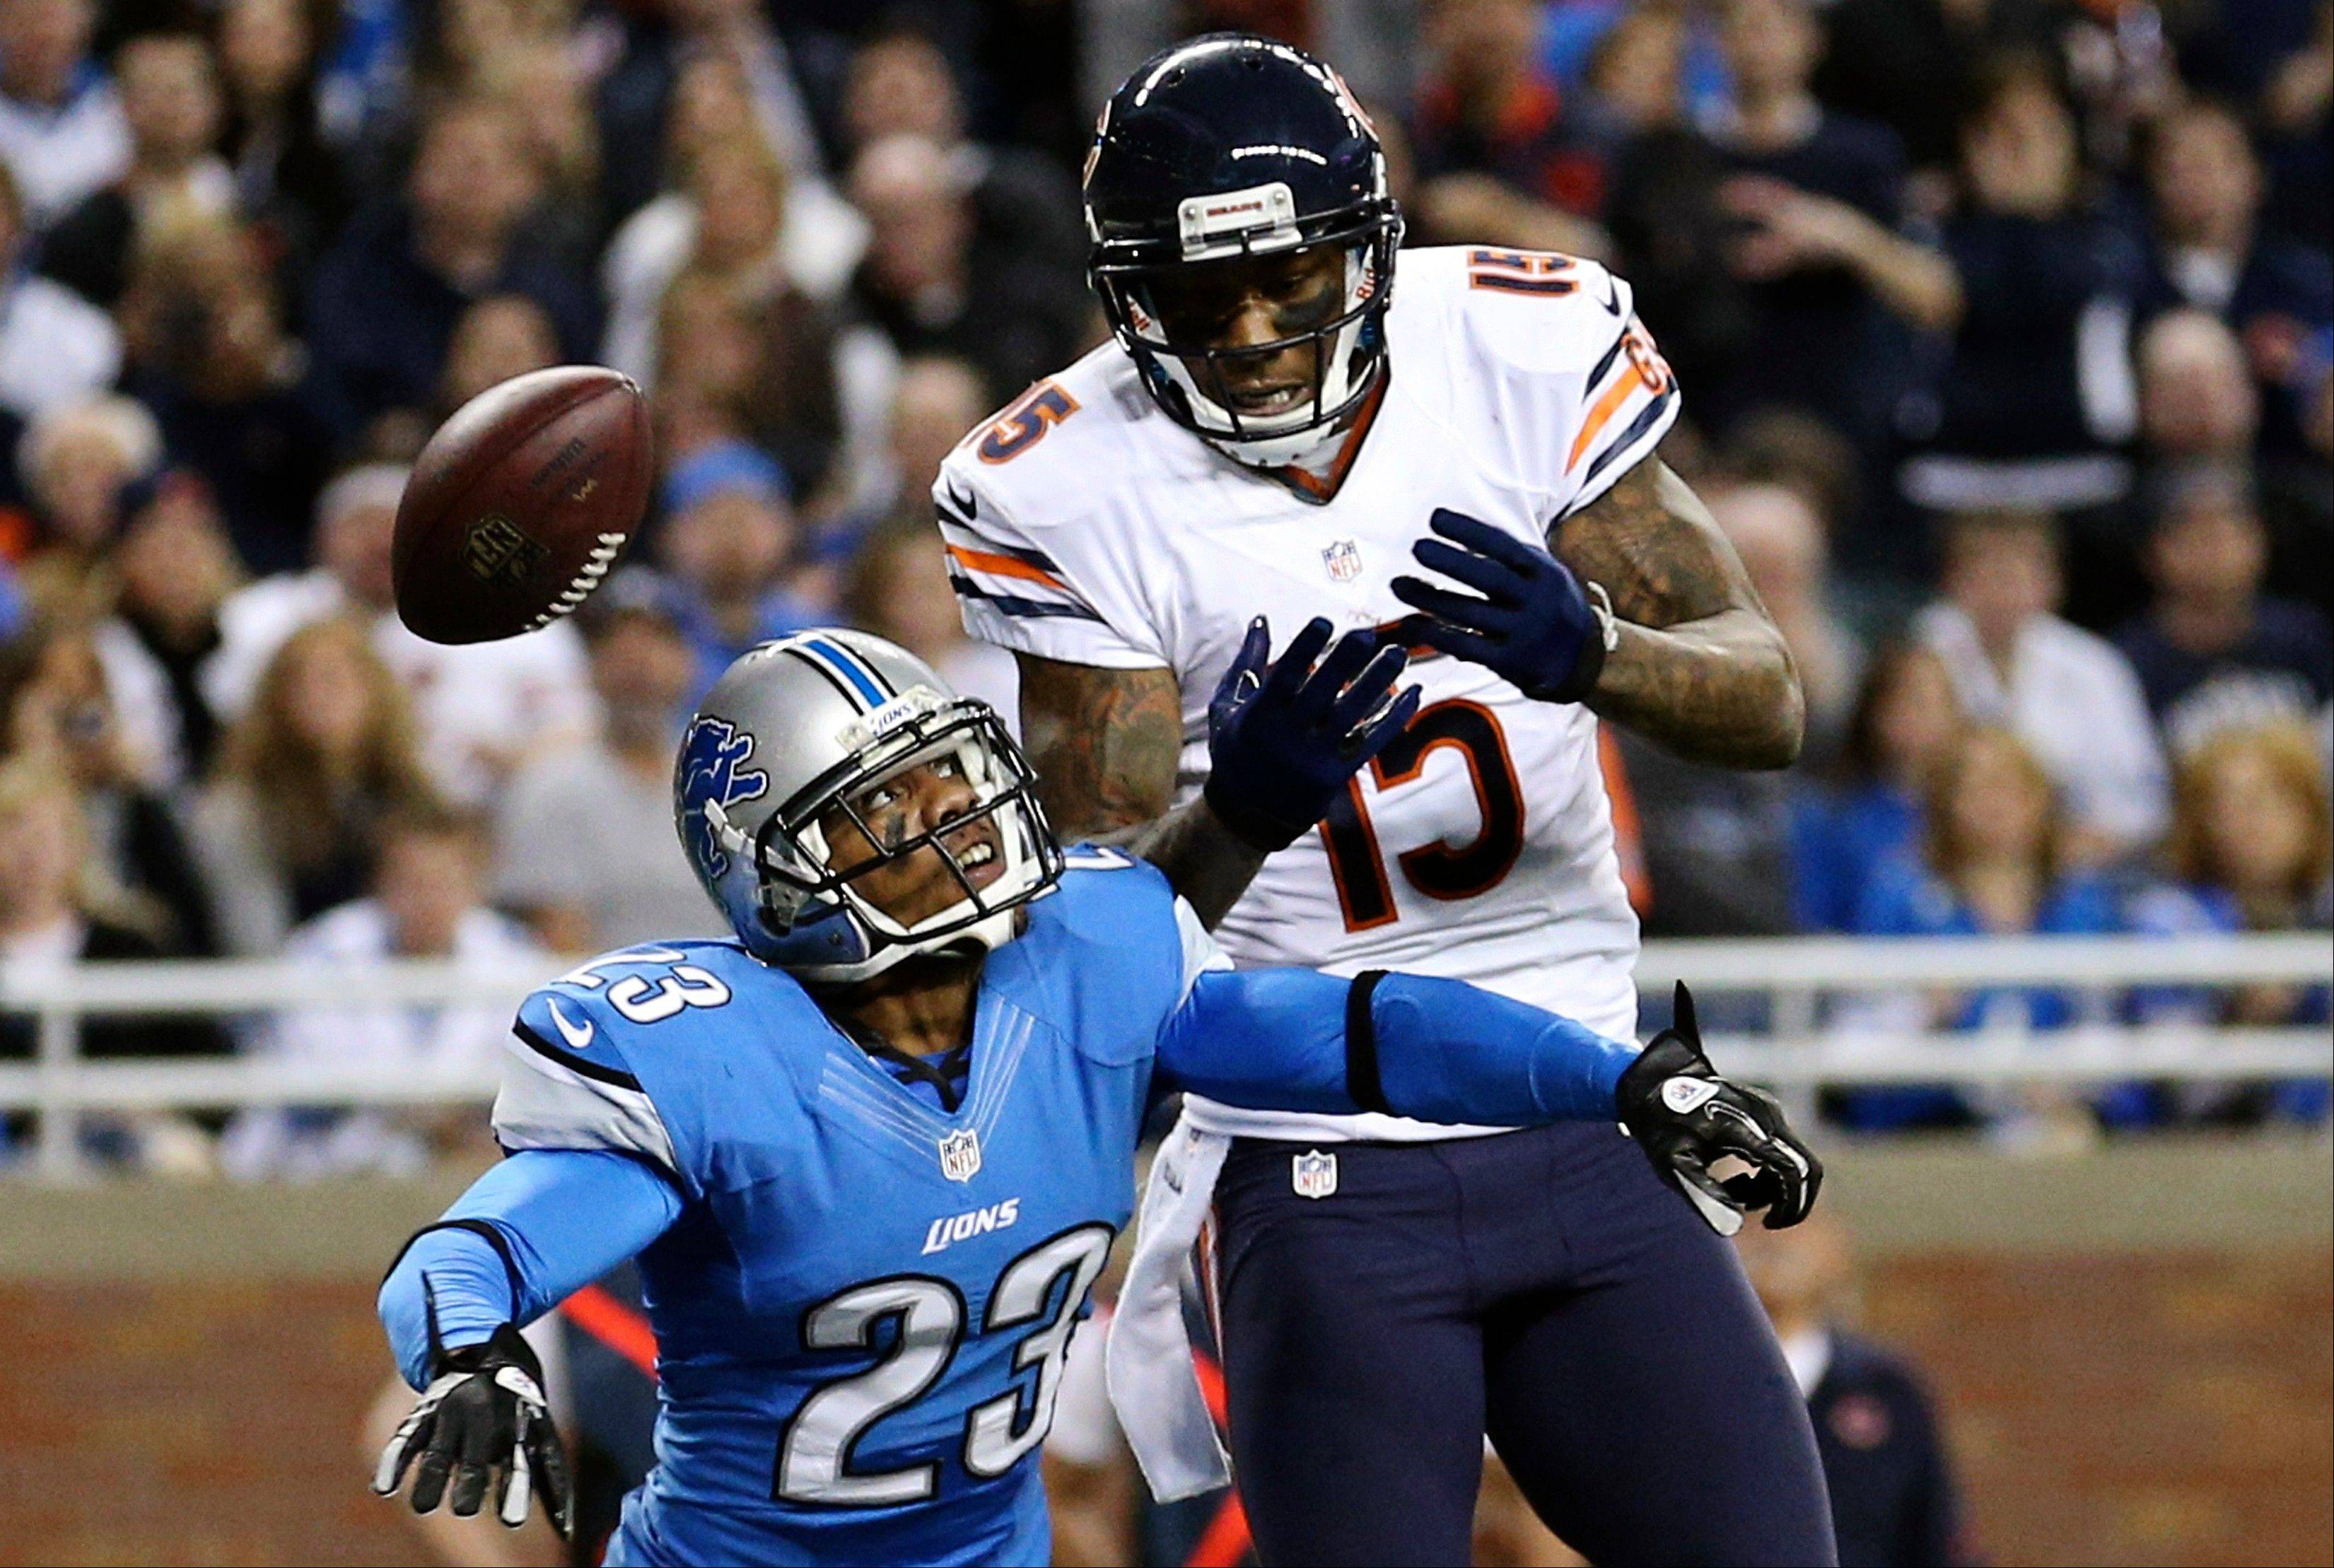 Detroit Lions cornerback Chris Houston breaks up a pass intended for Bears wide receiver Brandon Marshall during the fourth quarter Sunday at Ford Field in Detroit. The Bears won 26-24 but still missed out on the postseason party.